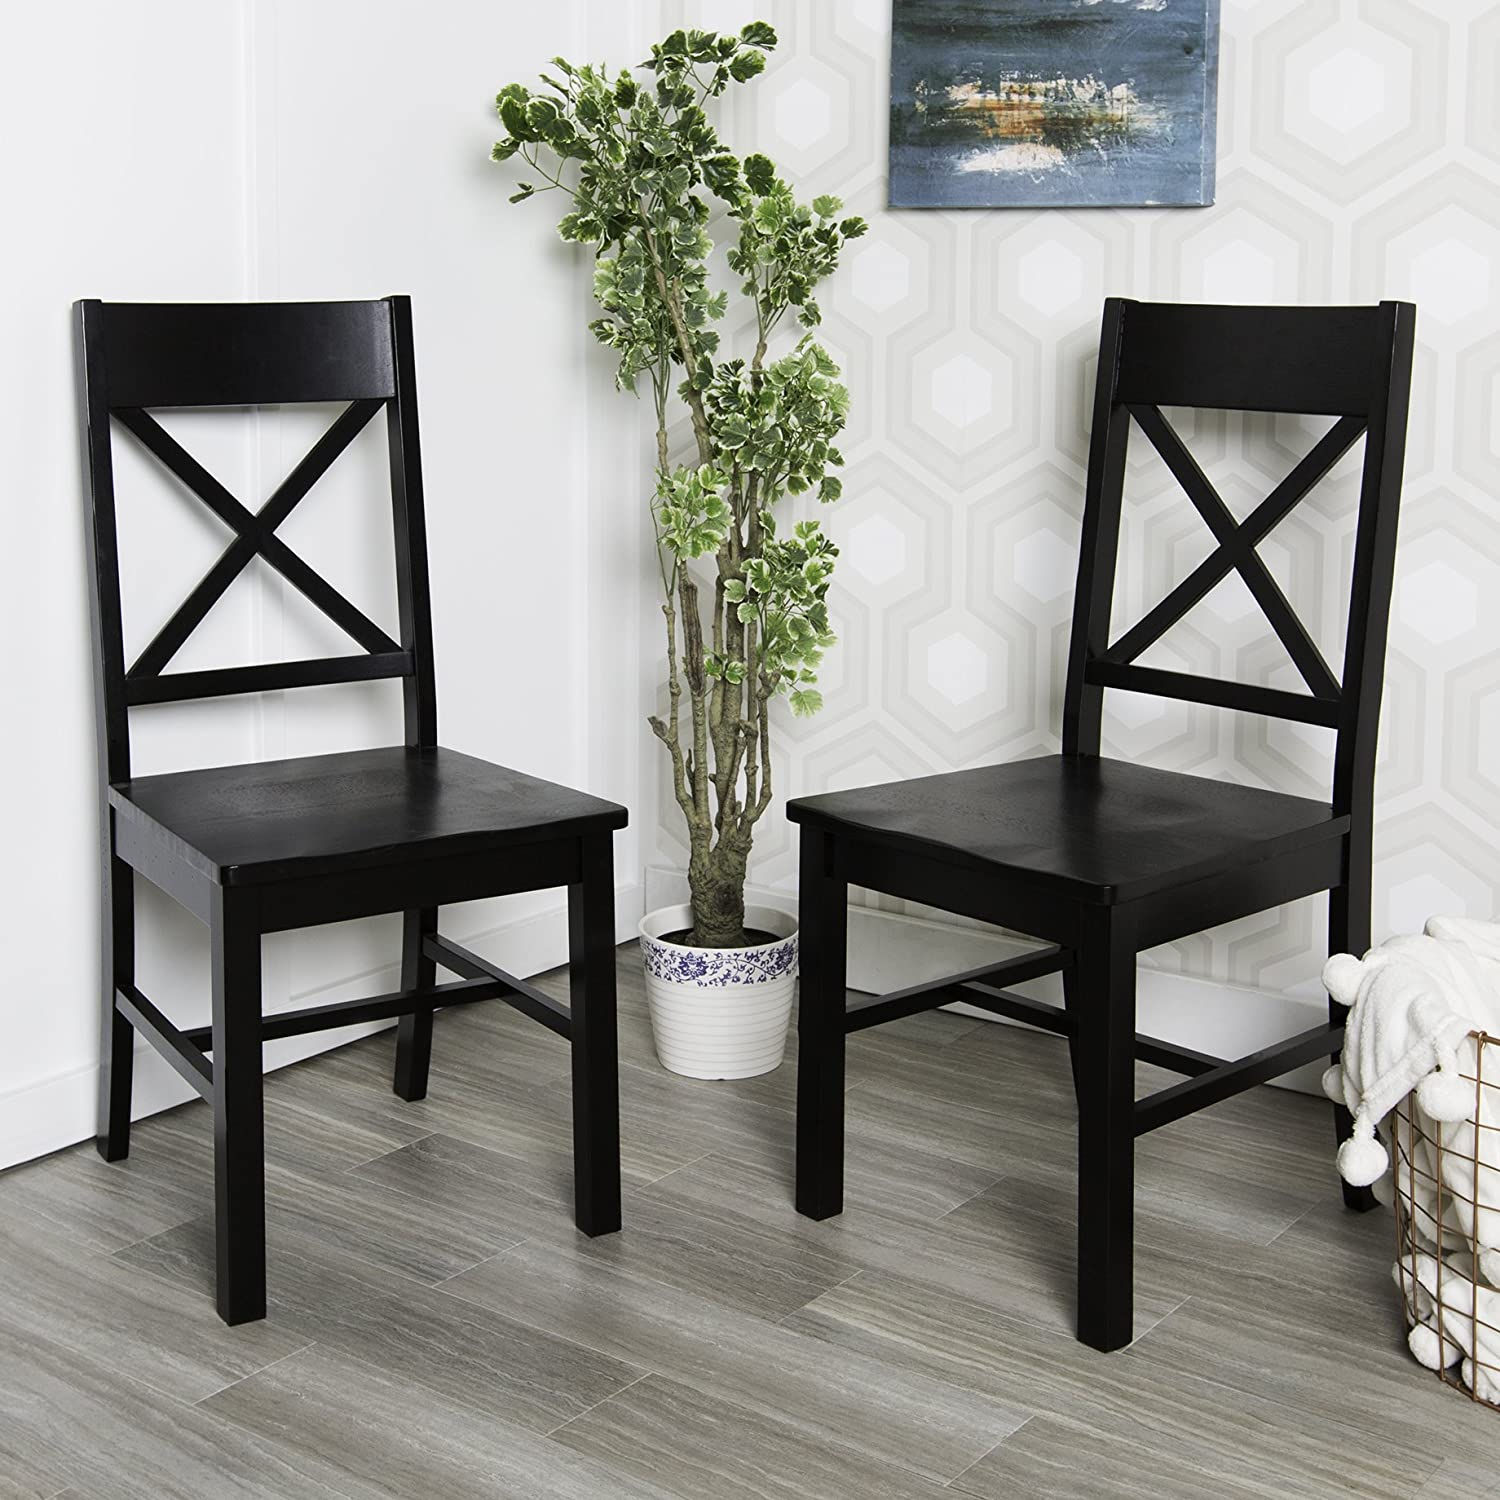 Black Hardwood Furniture